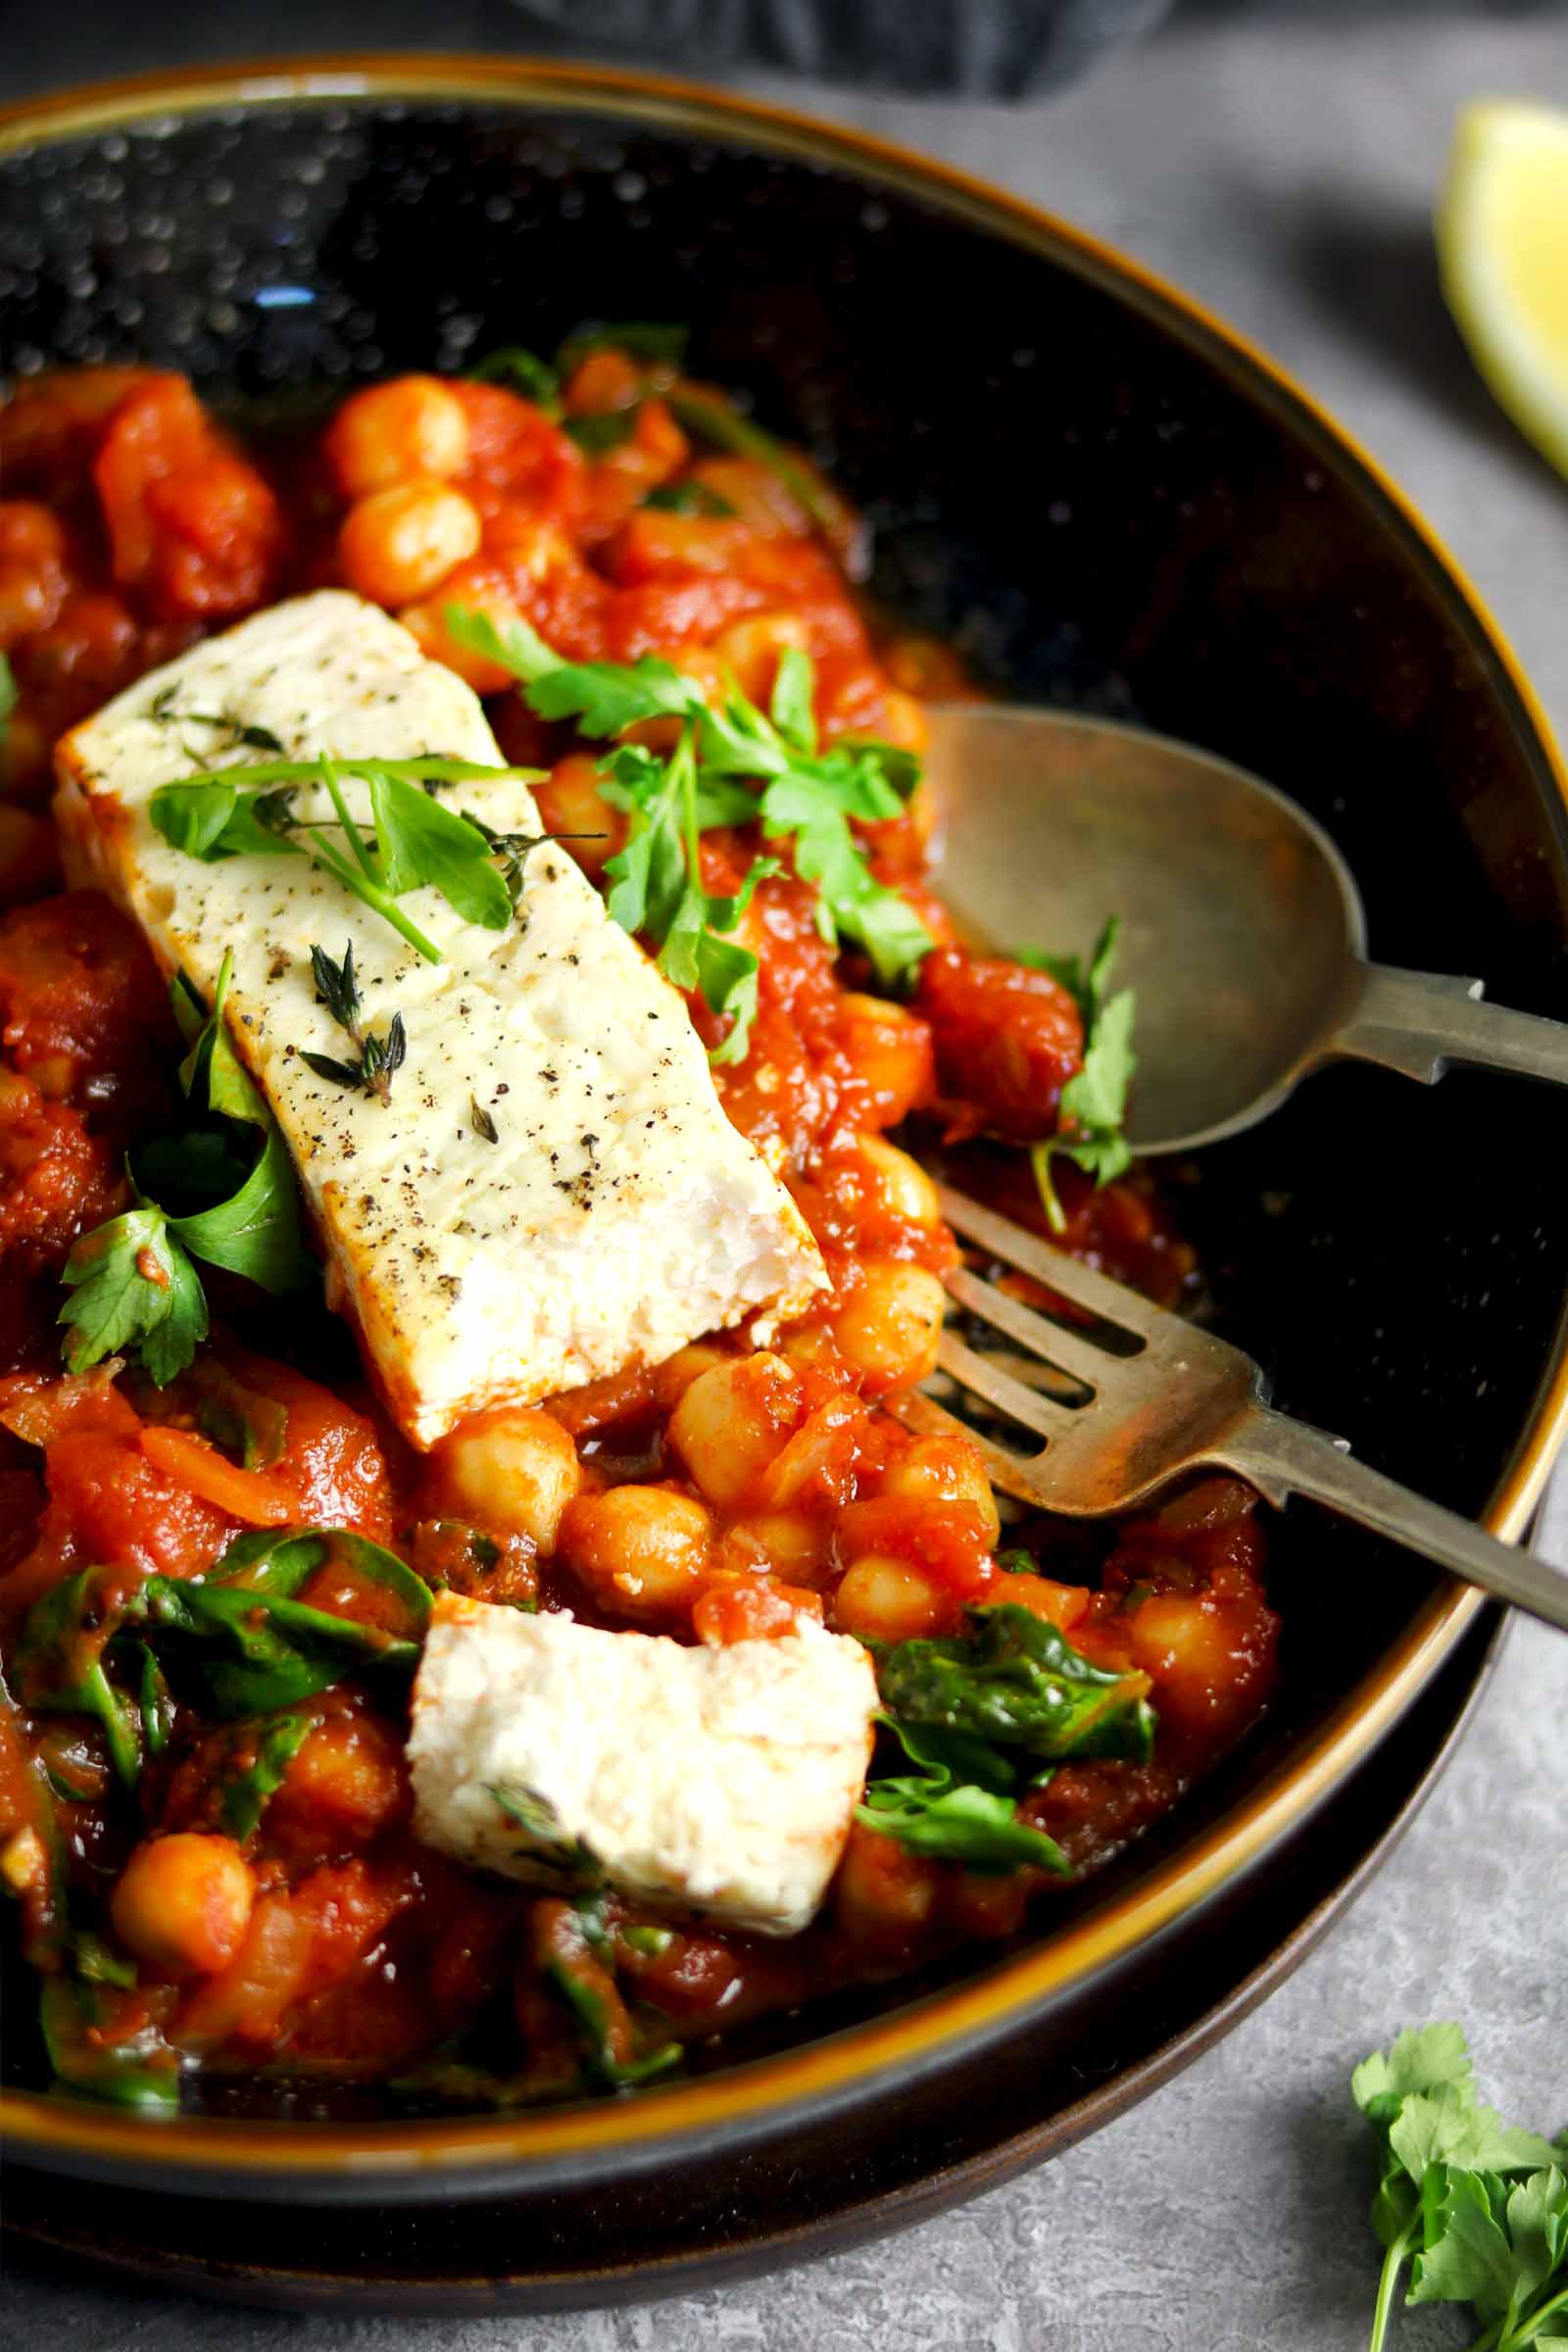 Baked Feta with Chickpeas - in bowl close up